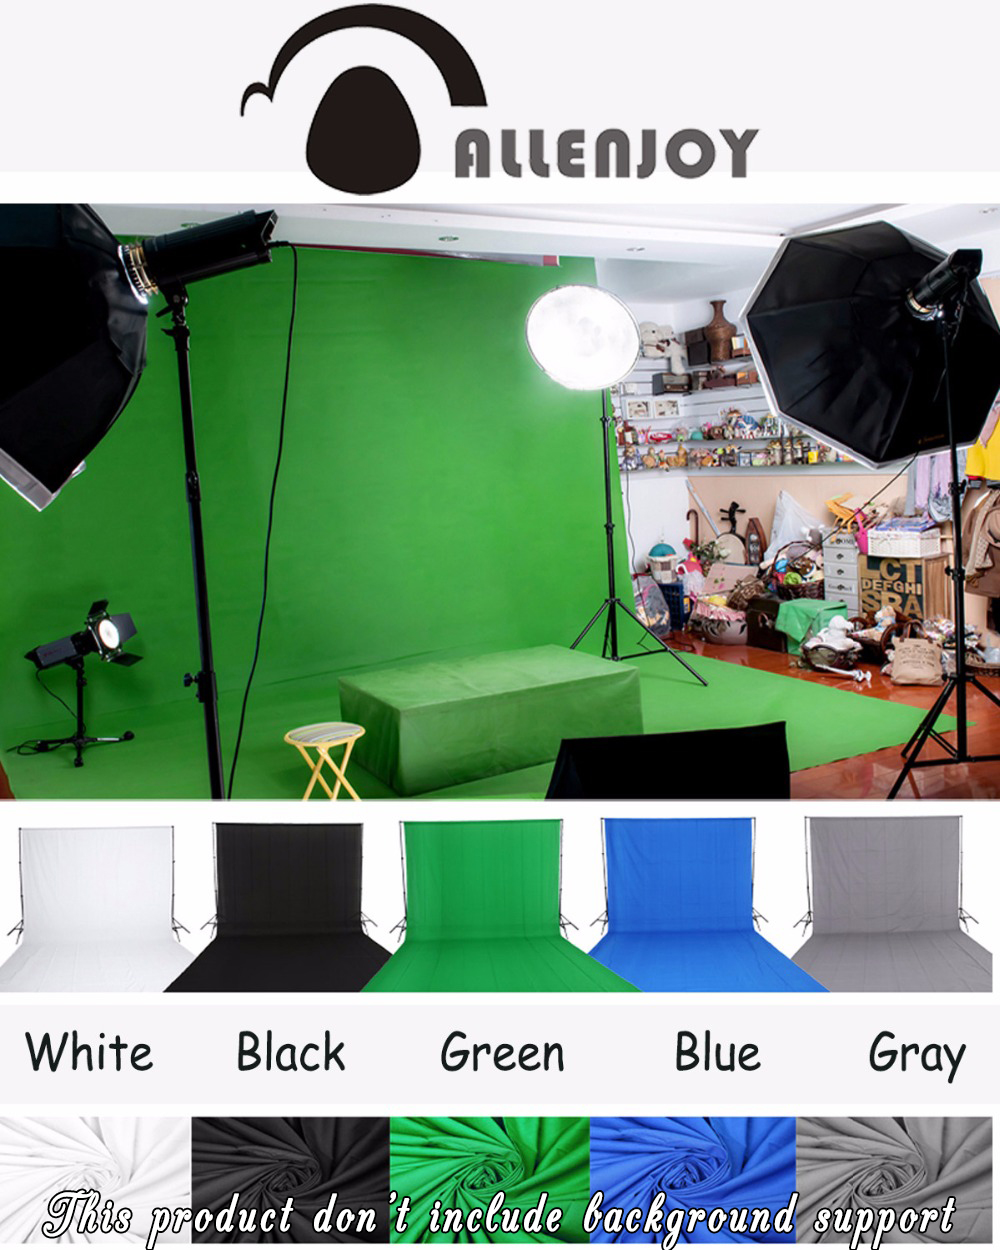 Allenjoy Green screen background chroma key more color Options Customized Size Professional Photo Lighting Studio